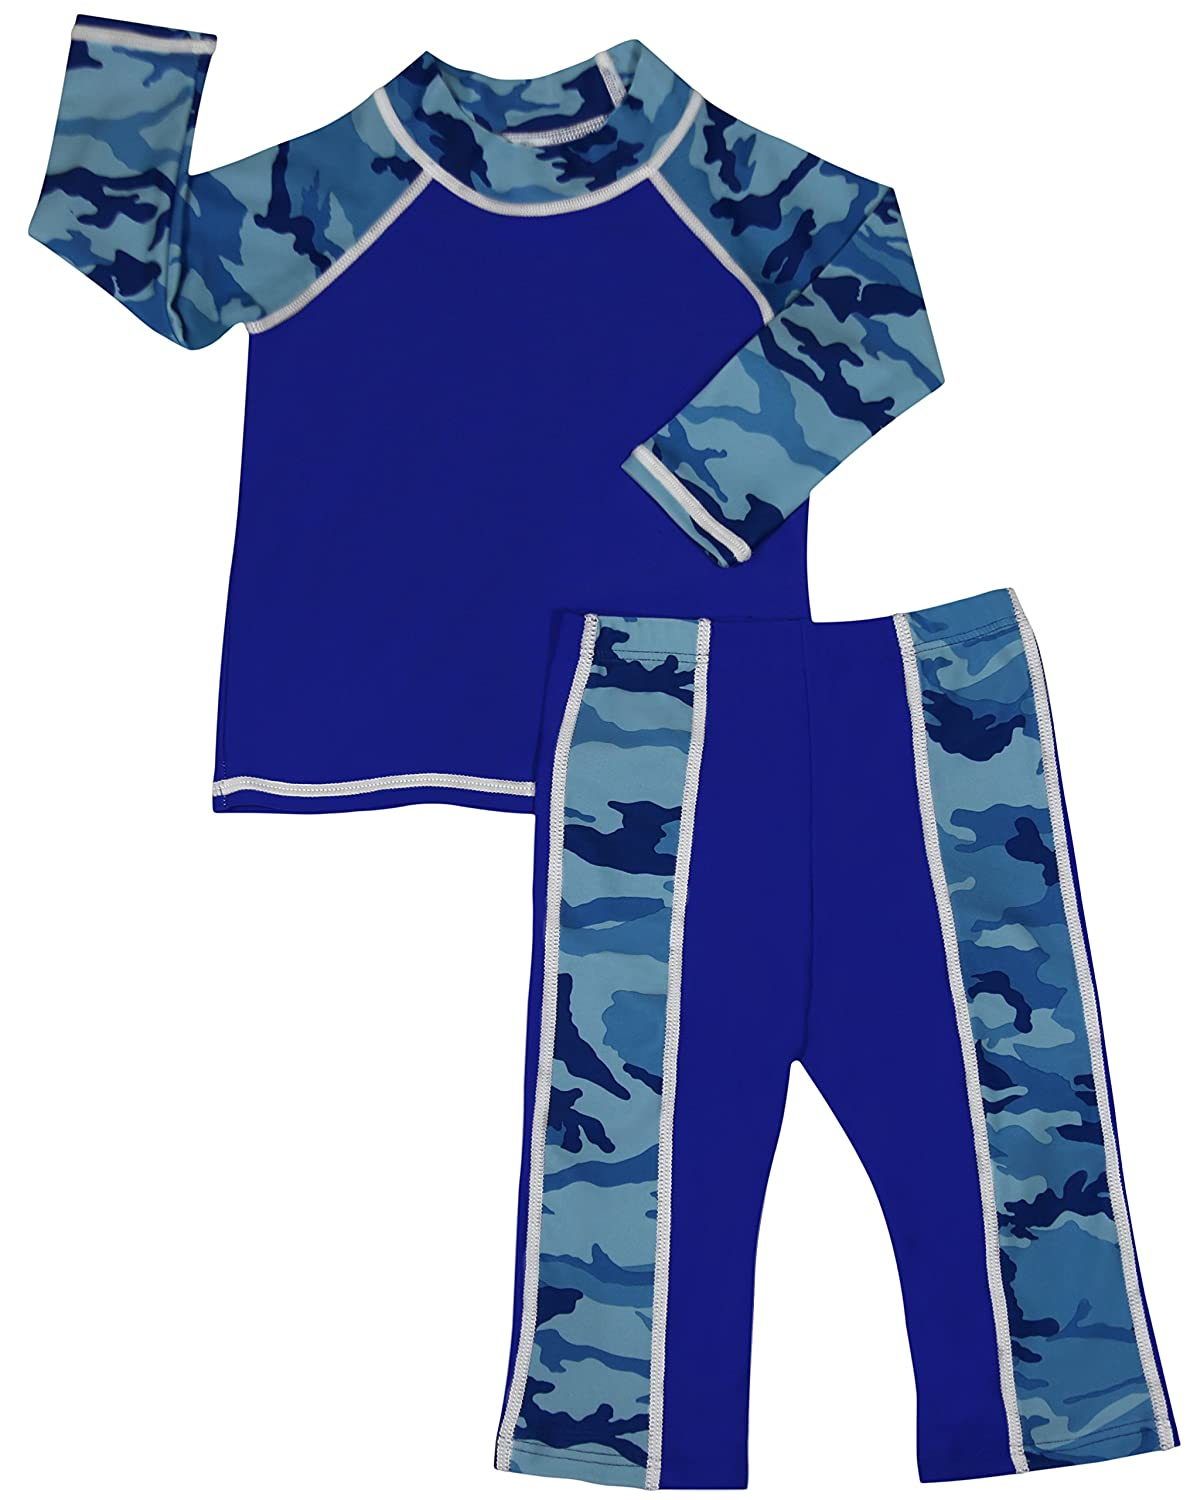 grUVywear UV Sun Protective Baby Boy 2 piece Long Sleeve Rash Guard & Pants Set UPF 50+ INF-P-B-LSSH